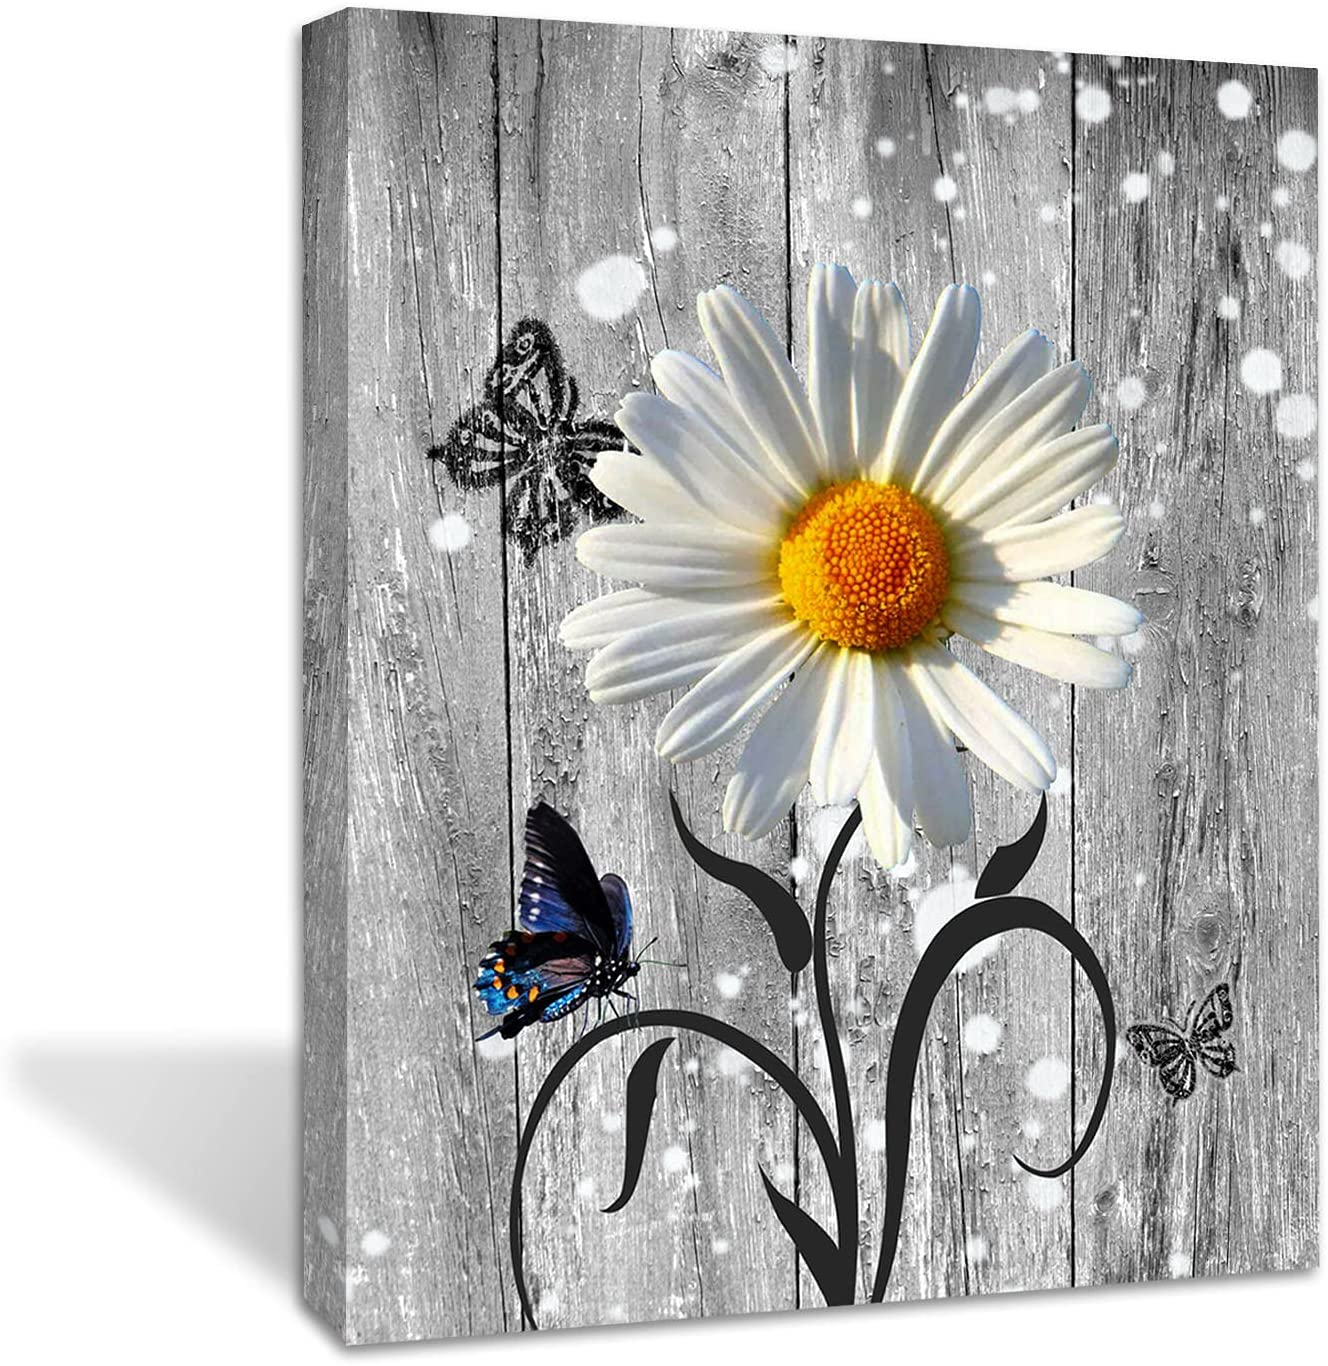 Yellow Daisy Flower Butterfly Wall art on The Gray Wood-Wall Decor -Living Room Bathroom Bedroom Office Wall Decor Home -Ready to Hang(Grey Daisy flowers, 16x20inch)